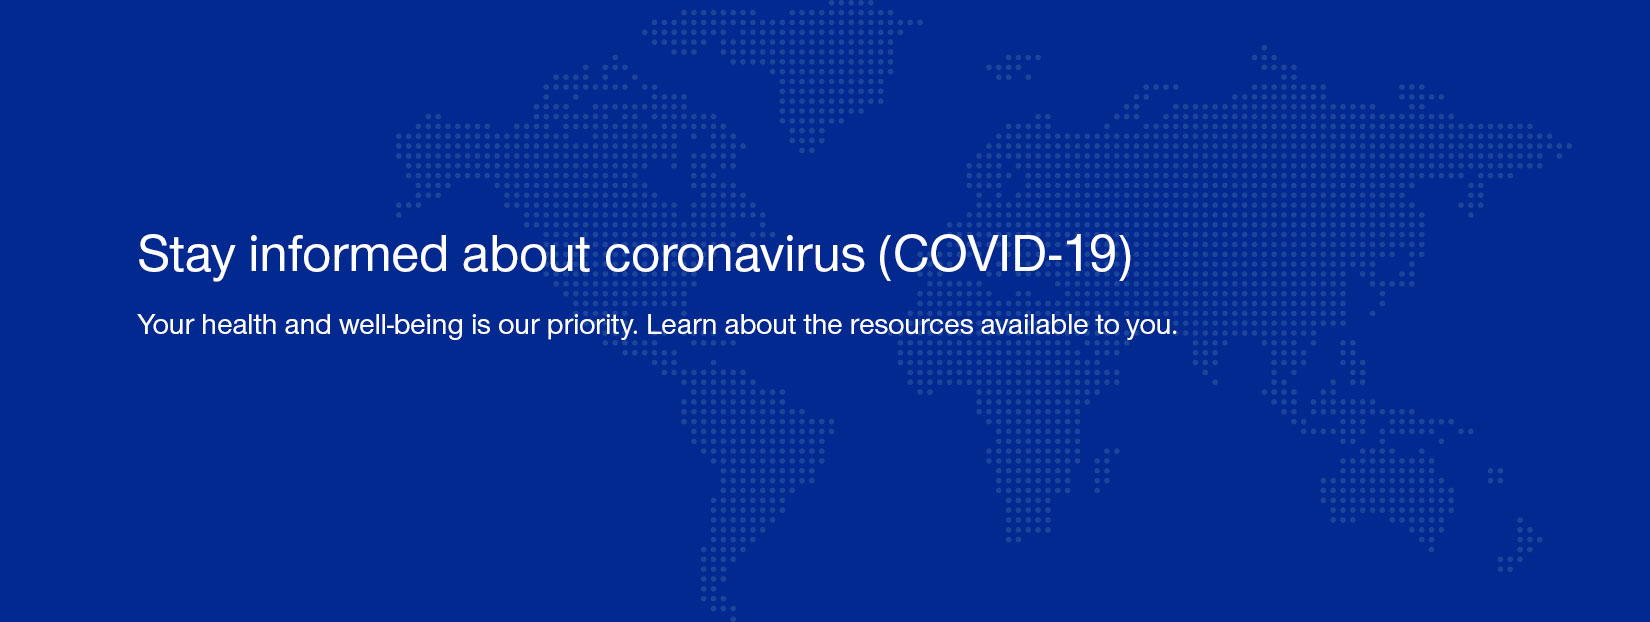 Stay-informed-about-coronavirus